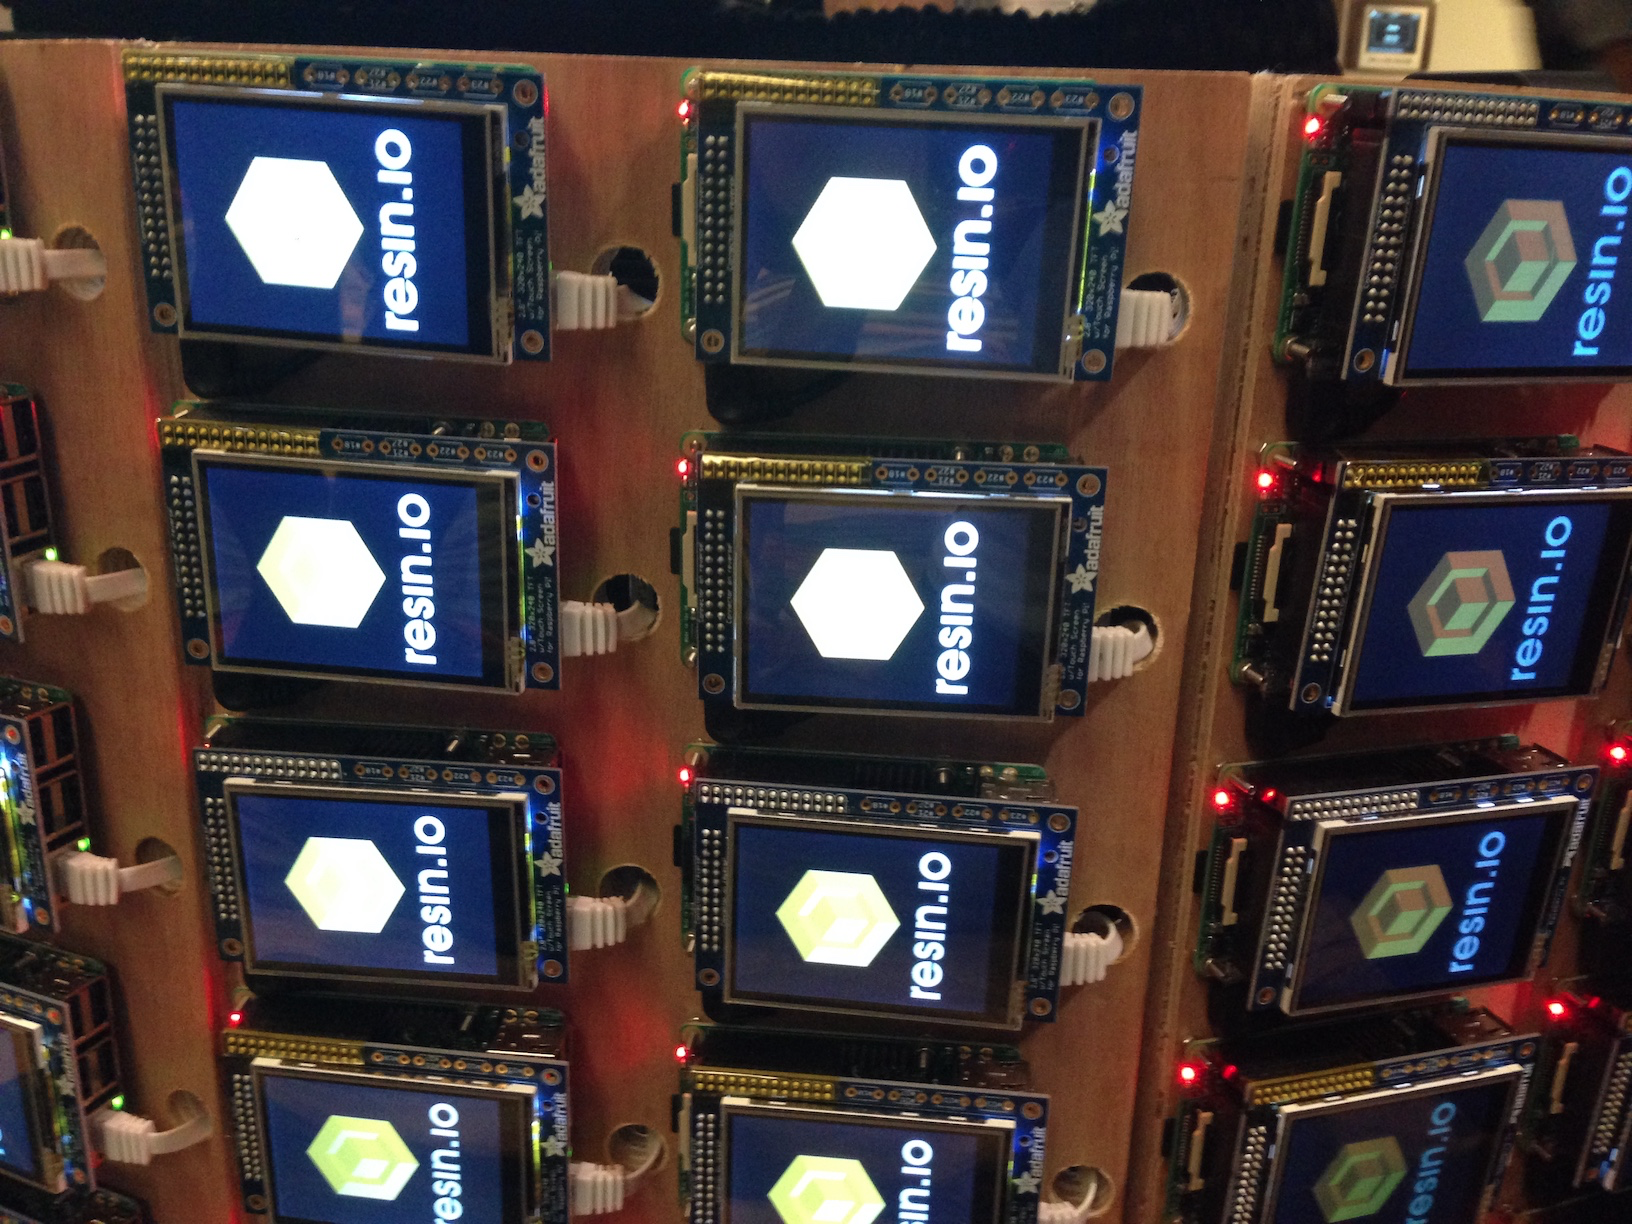 Cluster of Raspberry Pis running Docker